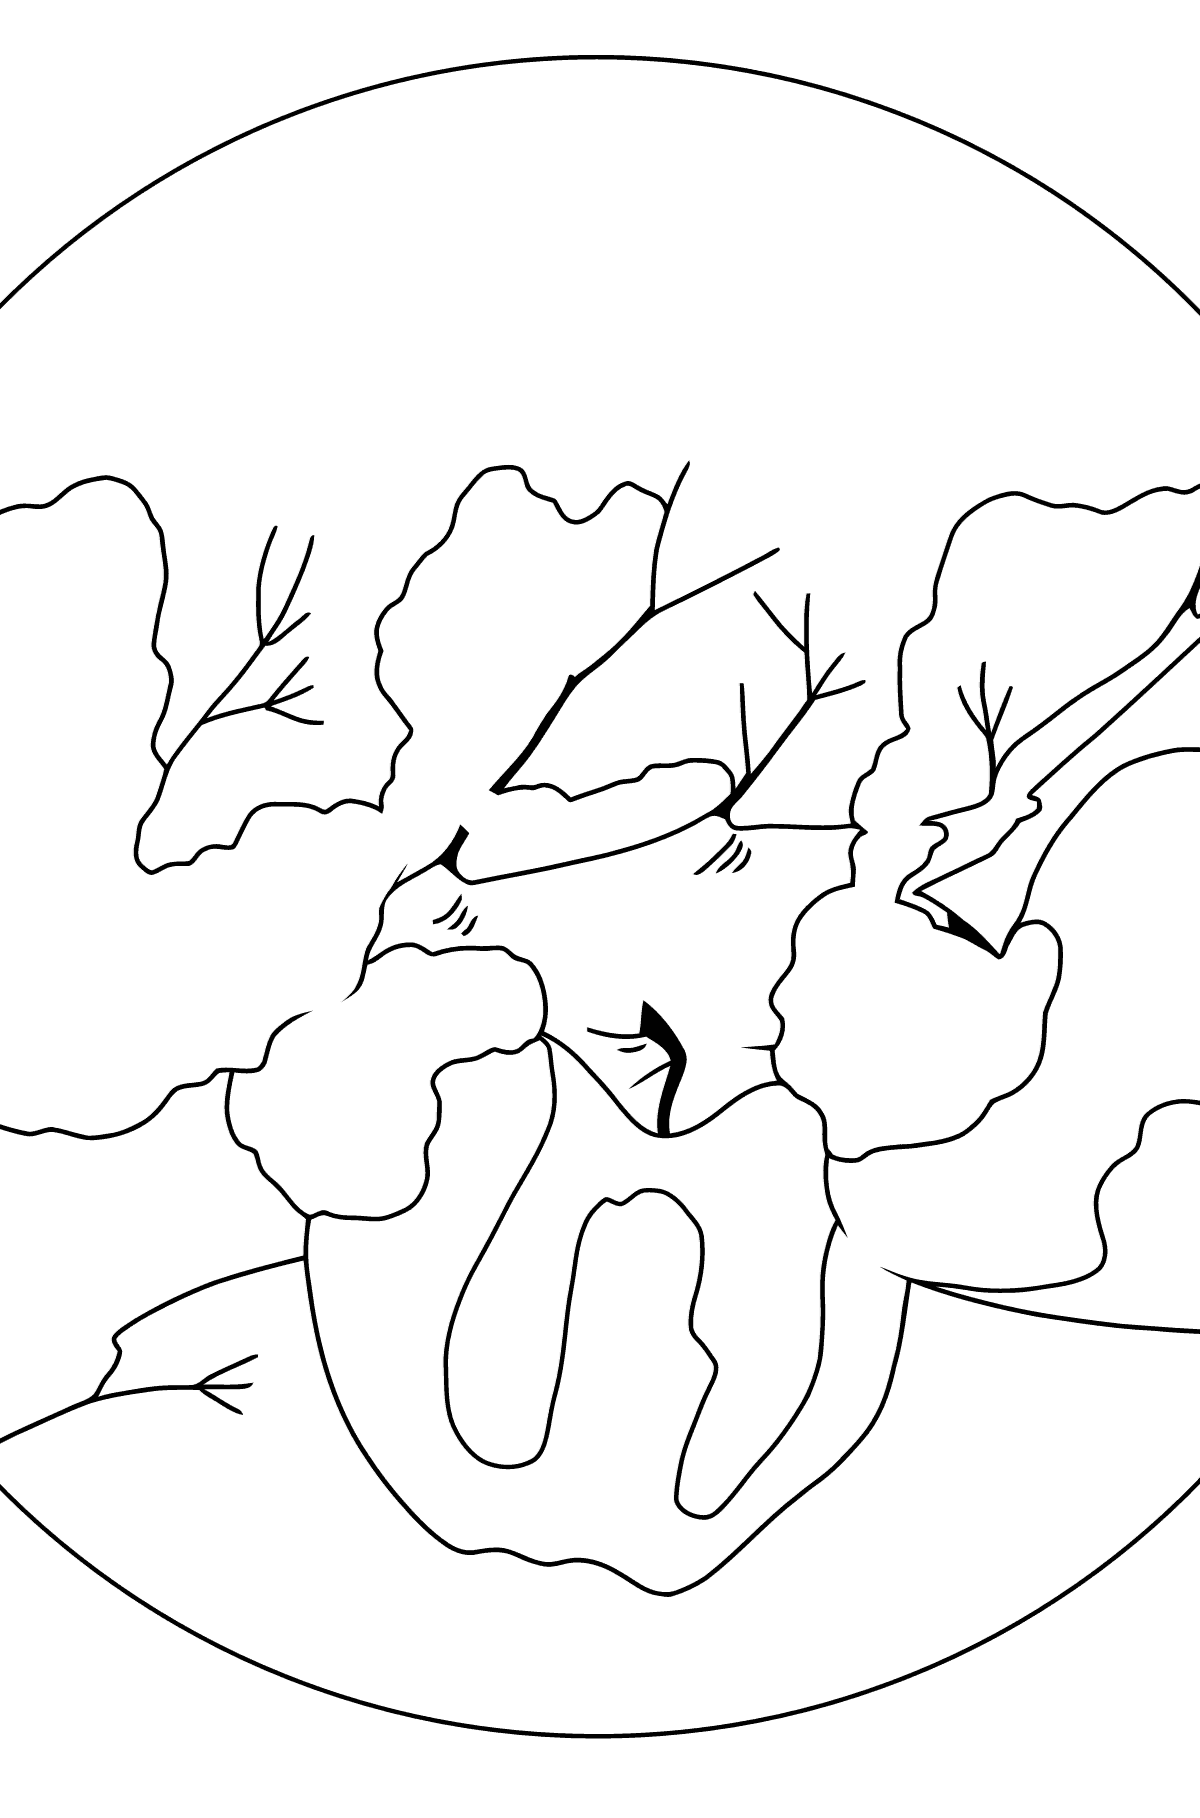 Winter Coloring Page - Apples in the Snow for Kids